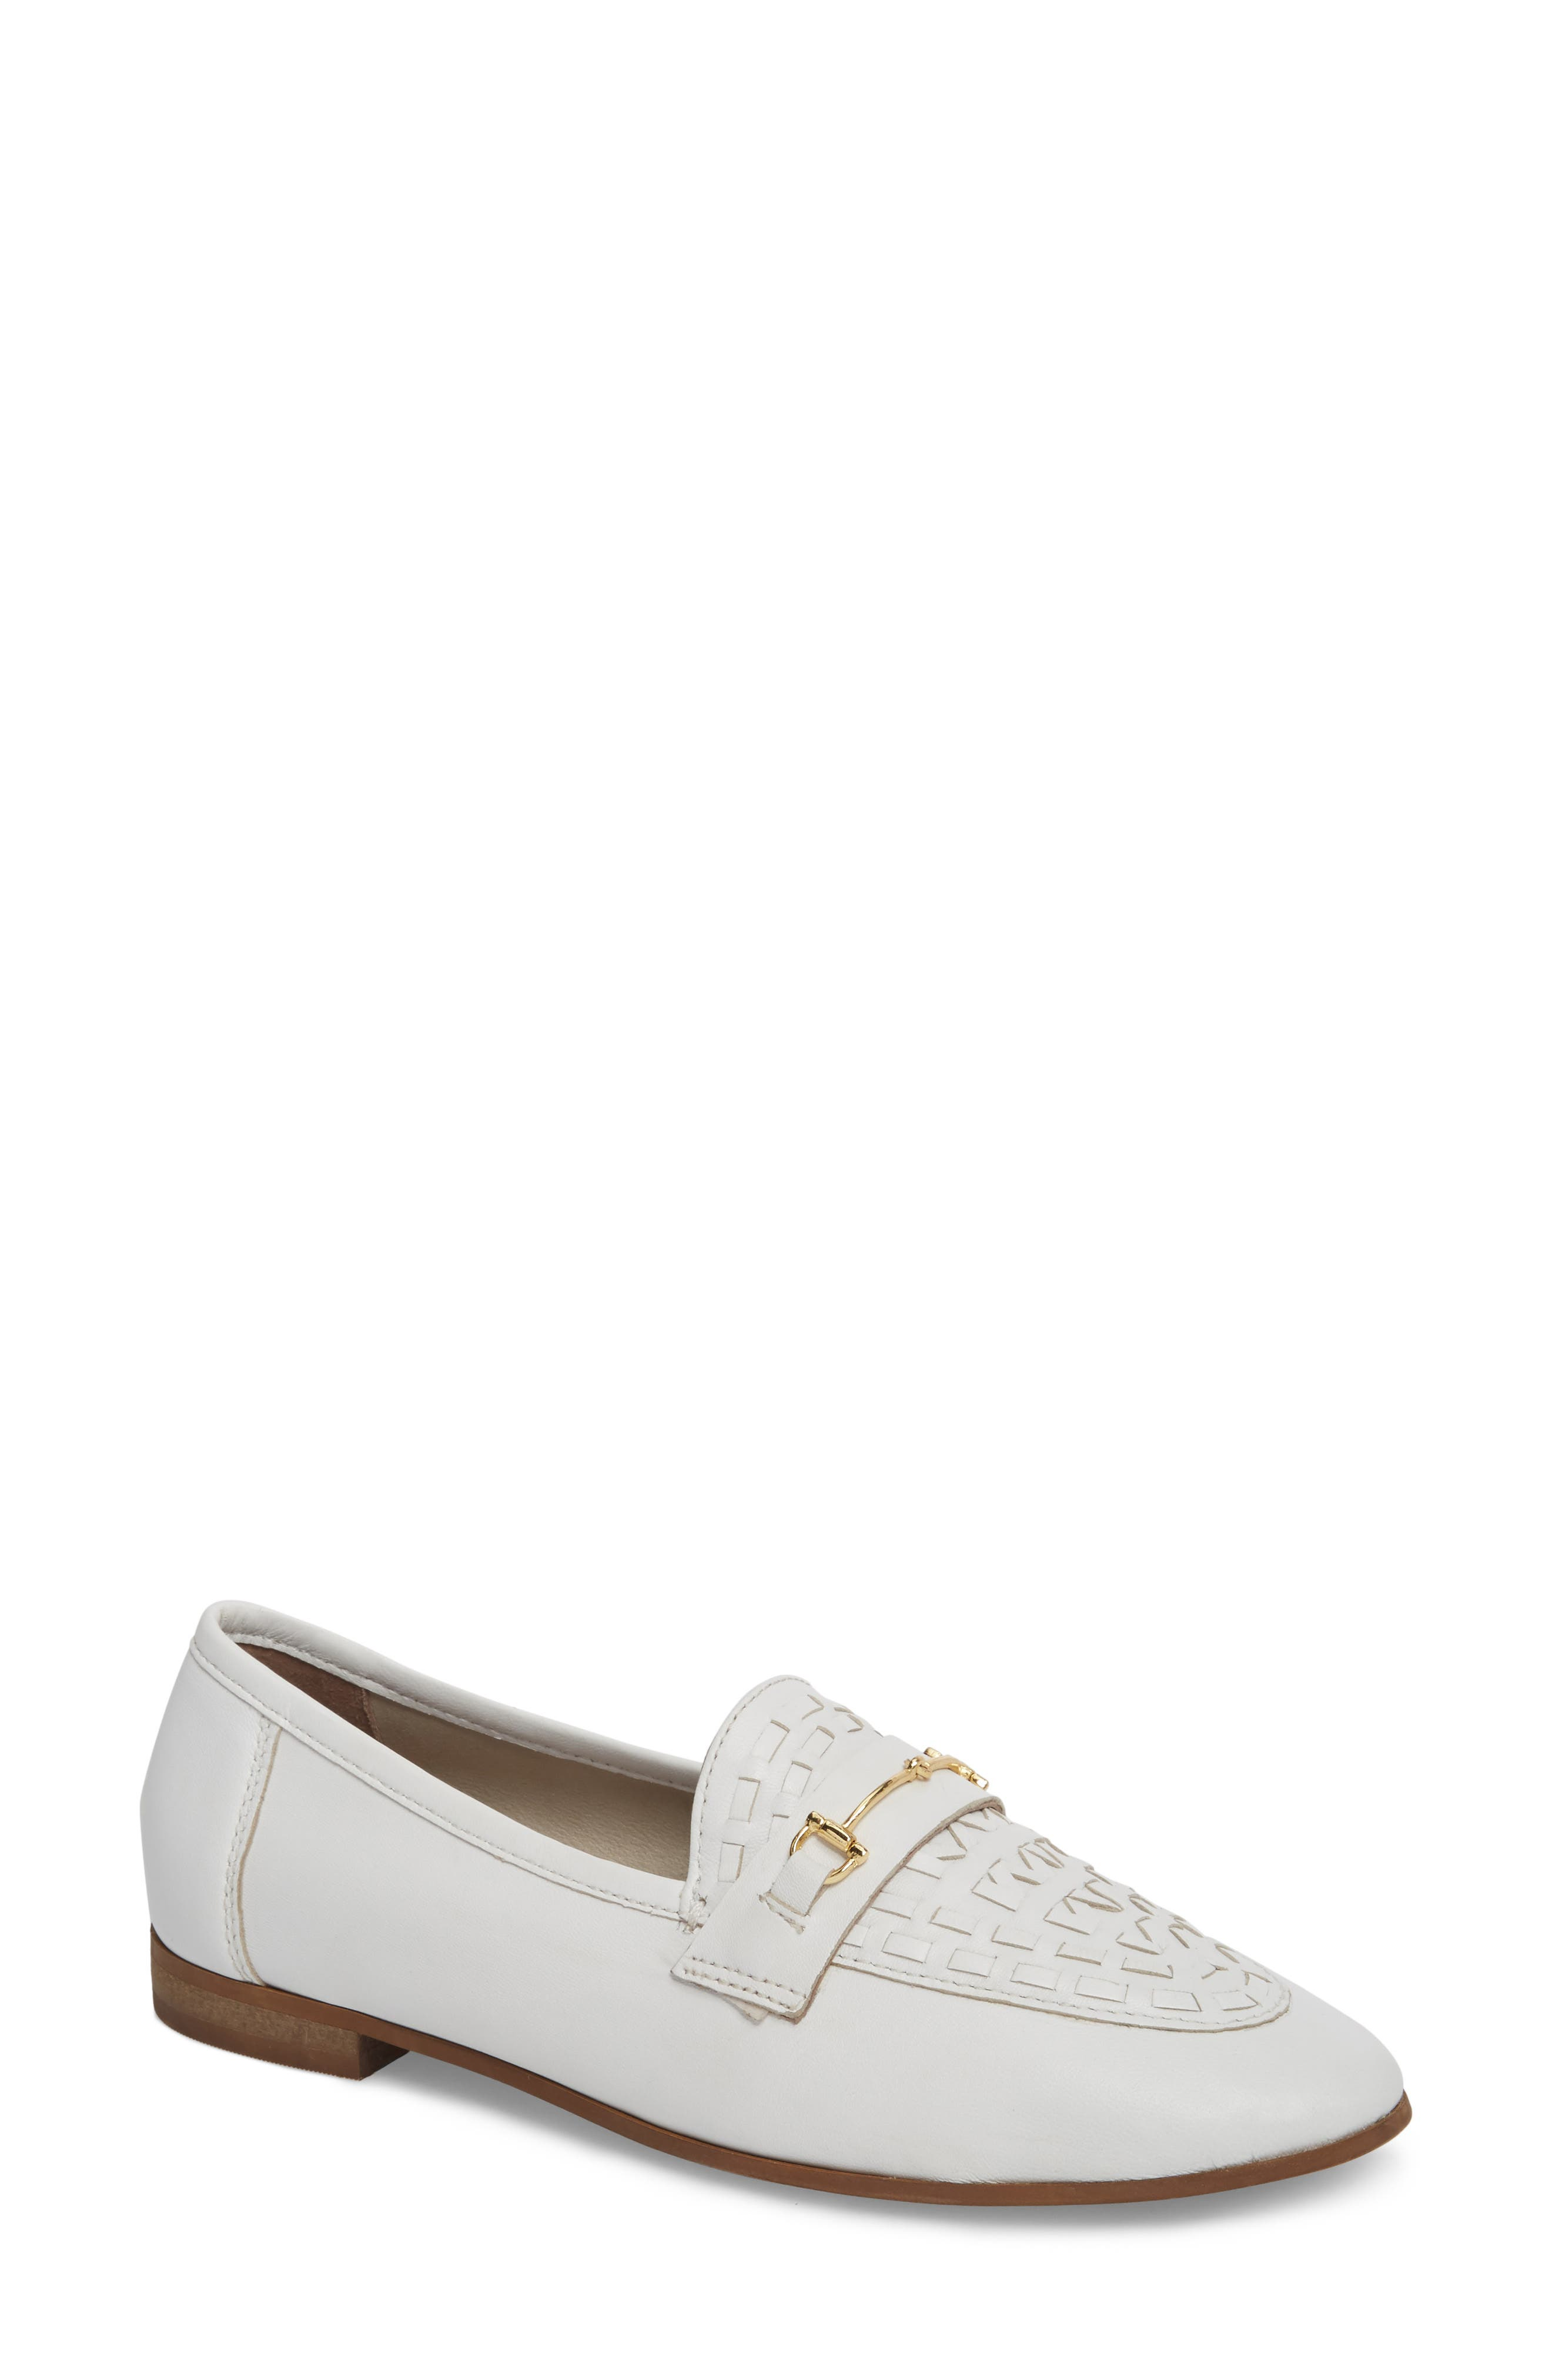 Kingley Woven Loafer,                             Main thumbnail 1, color,                             WHITE